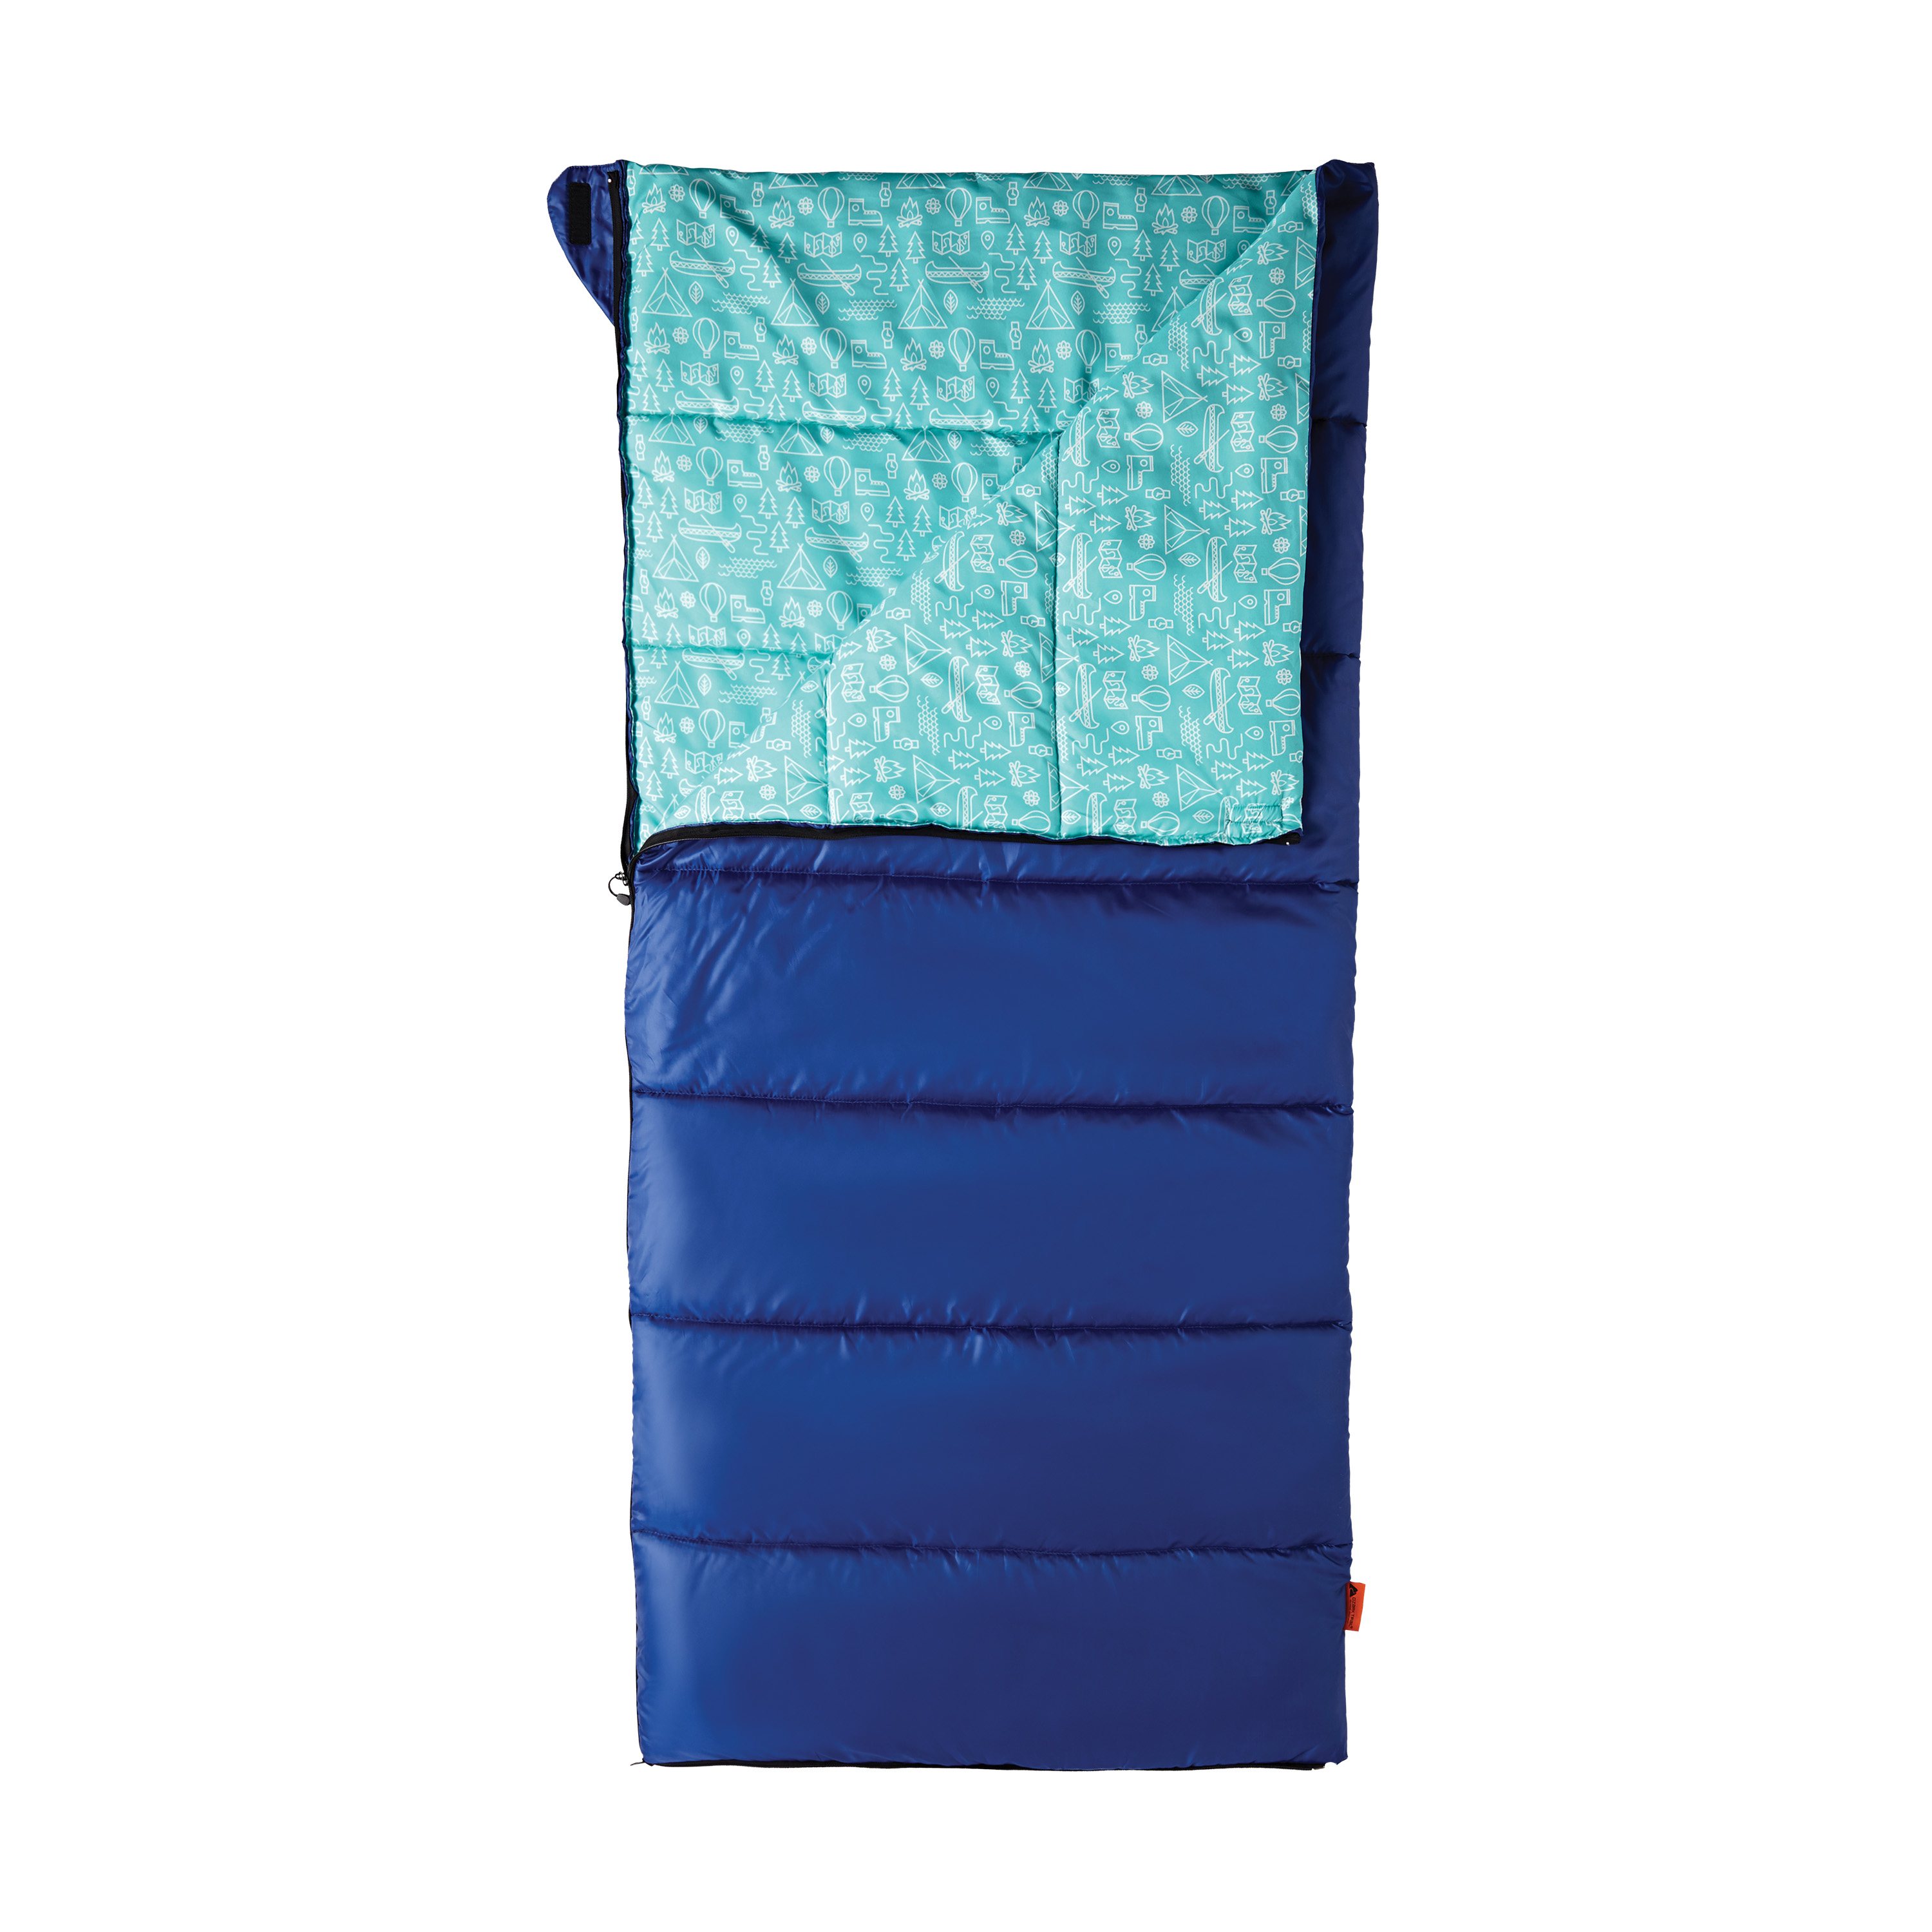 OZARK TRAIL YOUTH CAMP SLEEPING BAG - BLUE AND TEAL